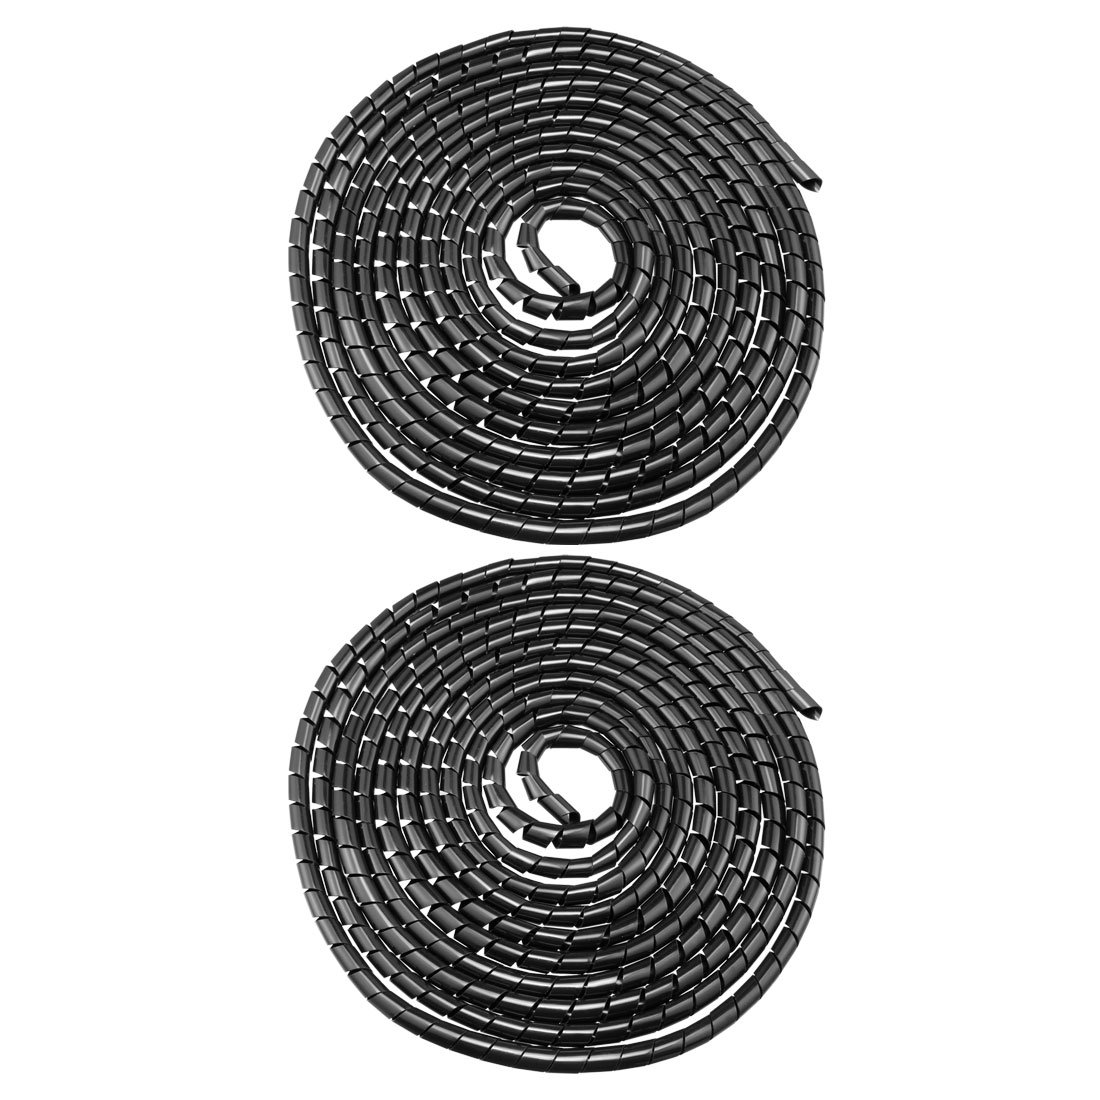 uxcell/® 12mm Flexible Spiral Tube Cable Wire Wrap Computer Manage Cord Black 5.5-8M